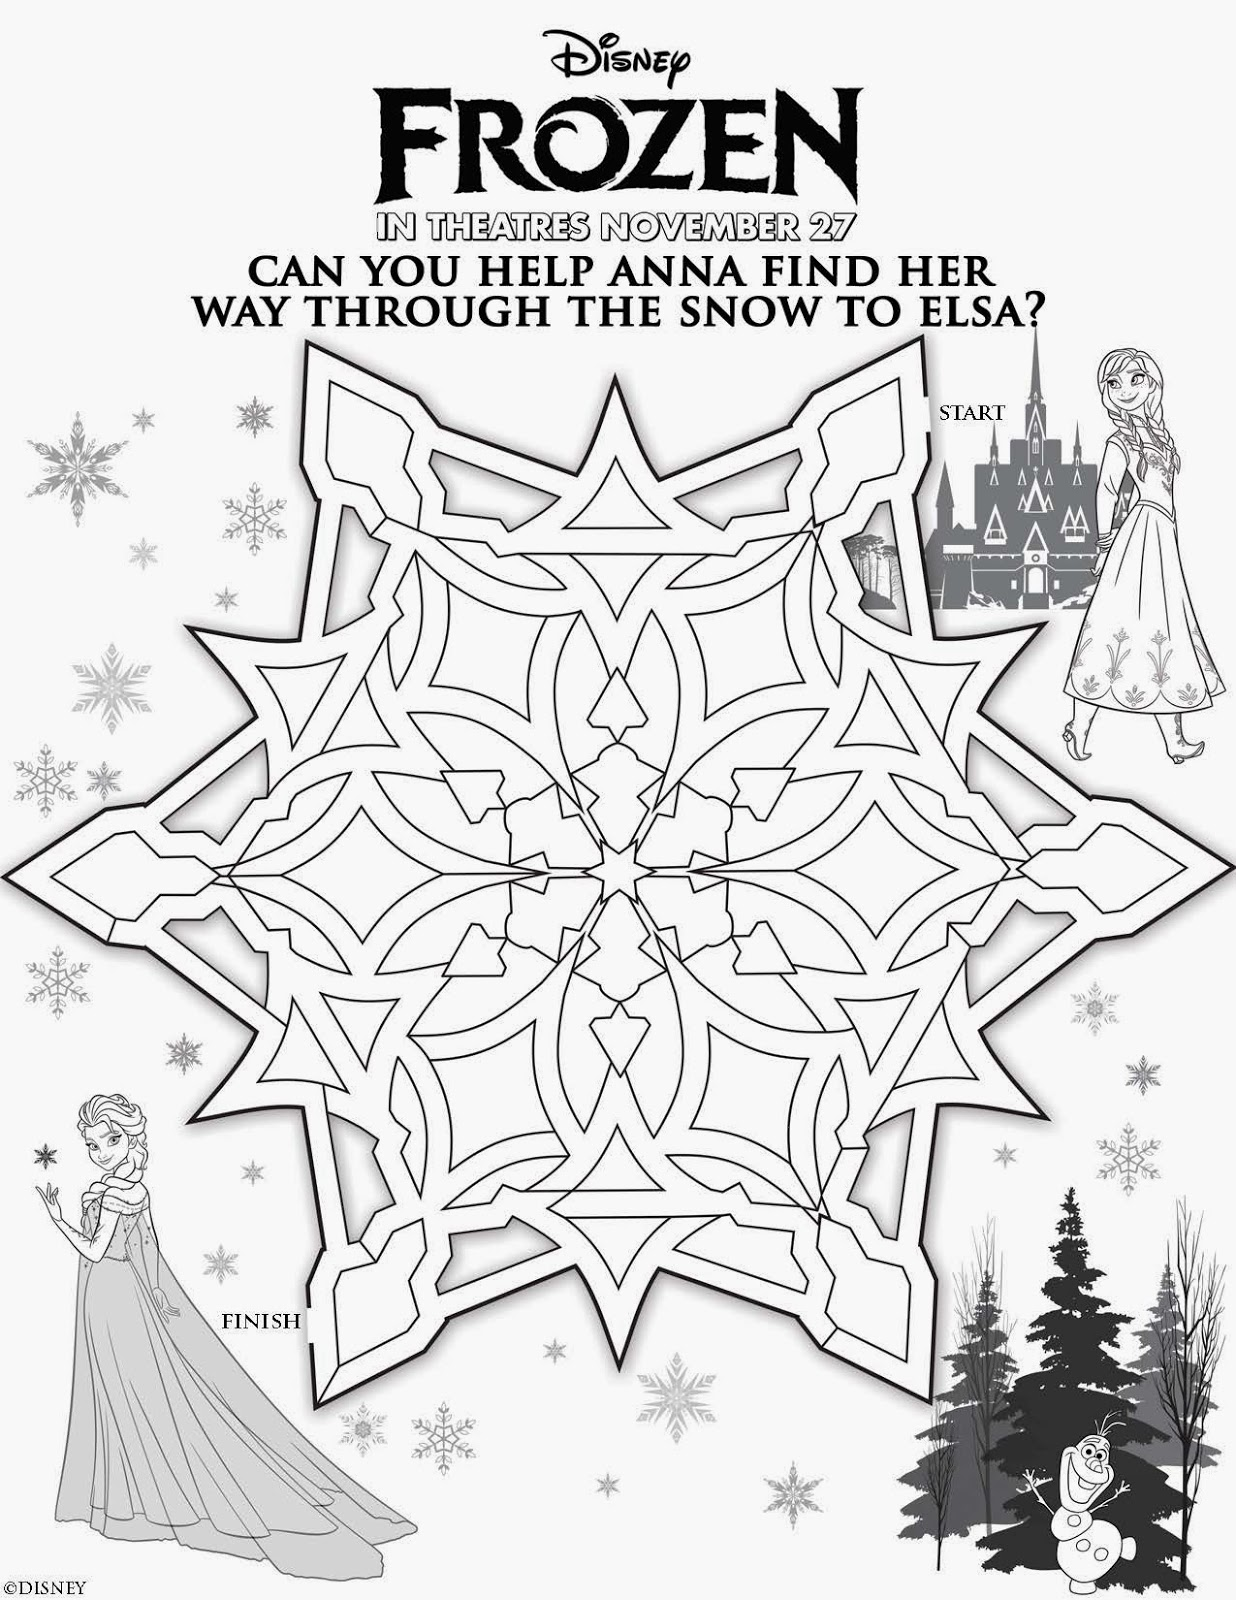 free printable coloring pages disney frozen - susieqtpies cafe disney 39 s frozen free christmas activity